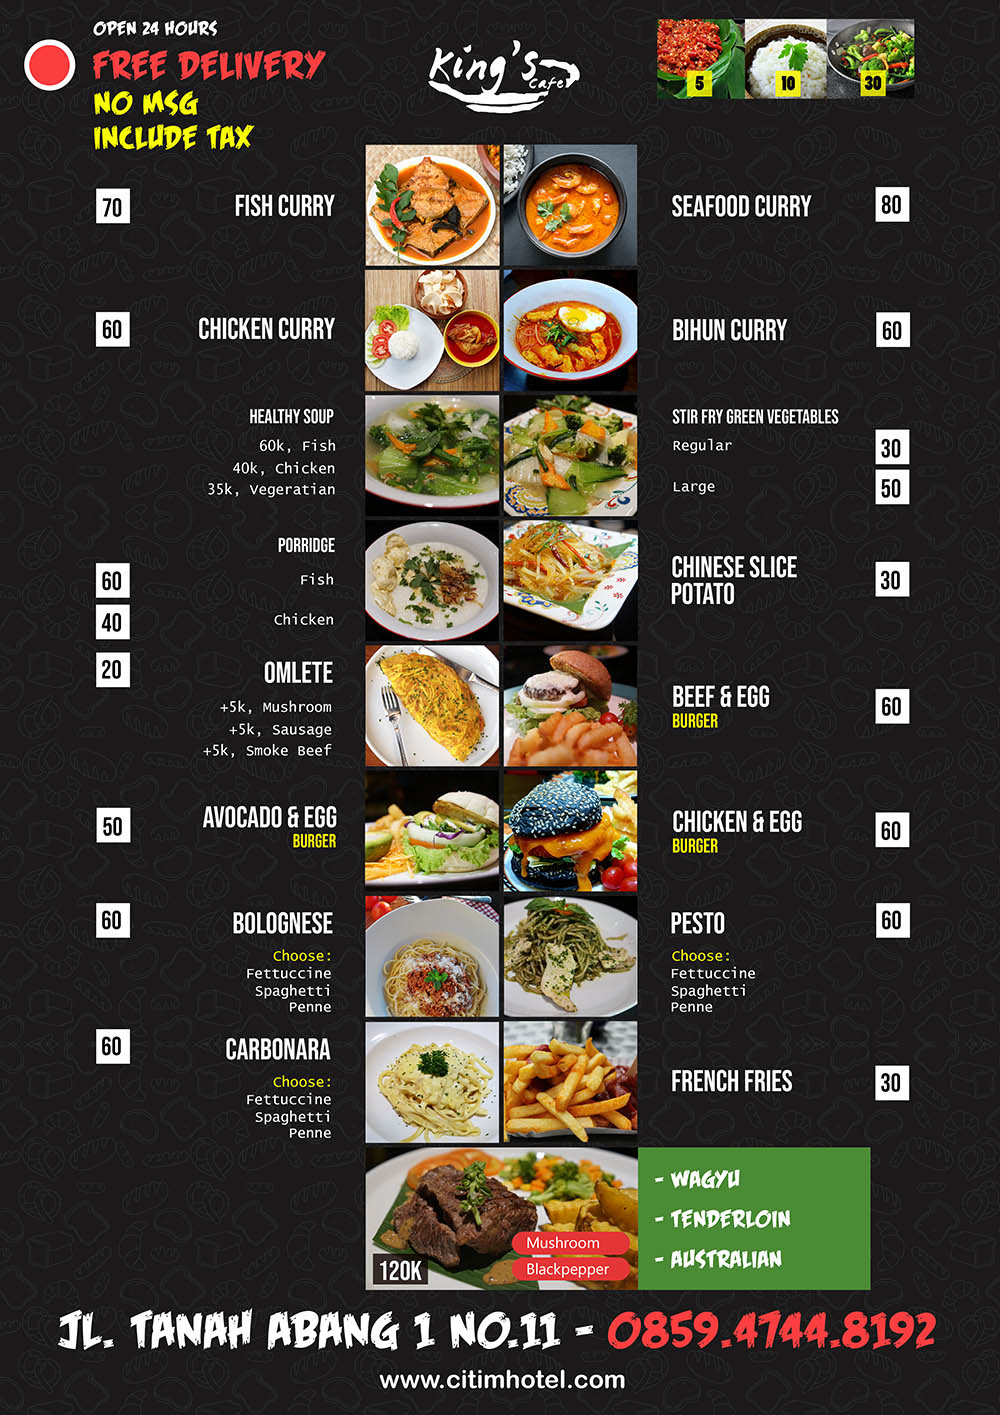 kings cafe - menu utama 1